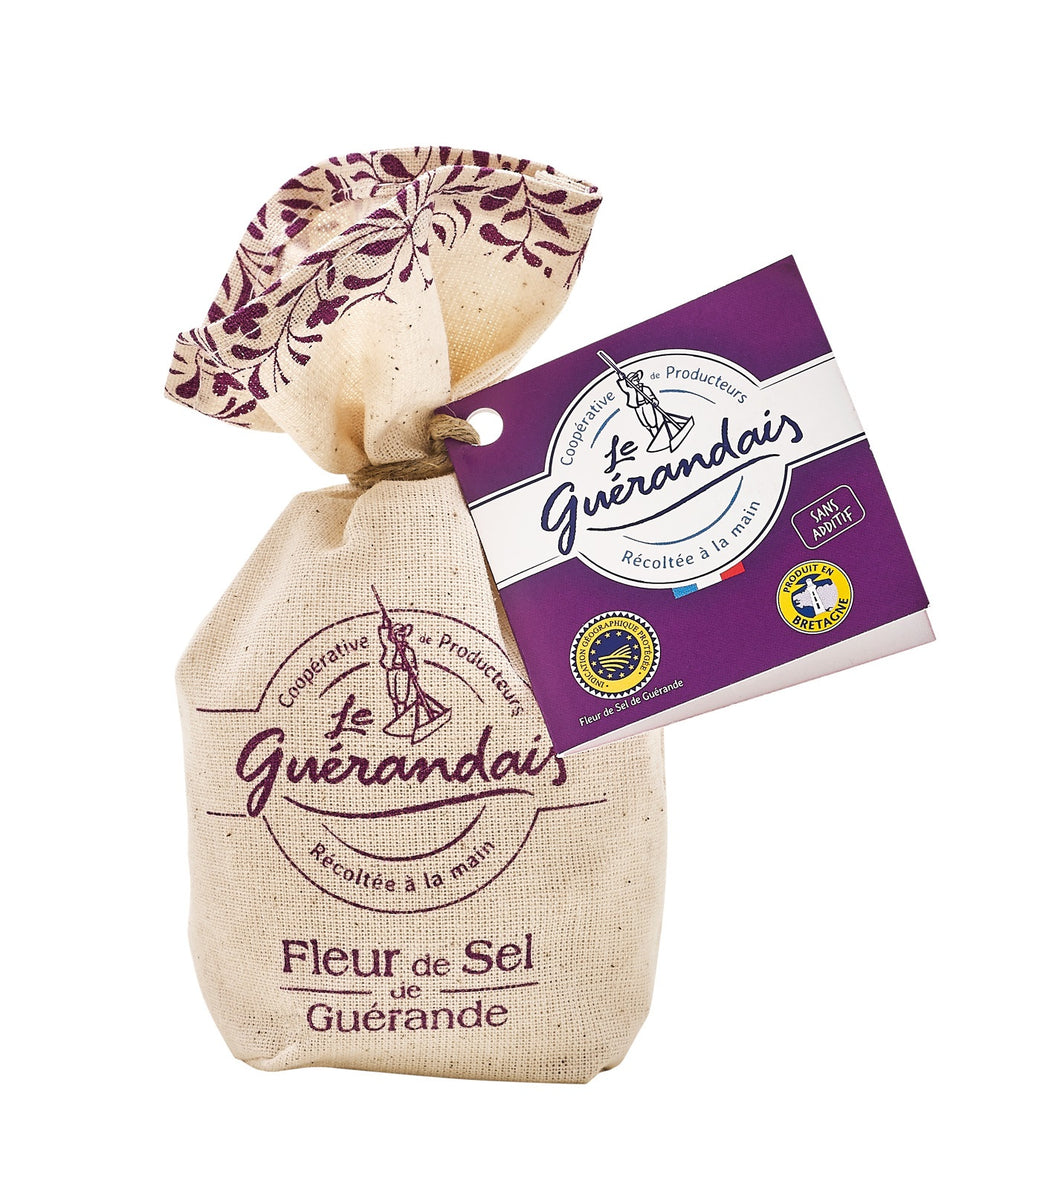 Fleur de Sel from Guérande - Cloth Bag (125g)